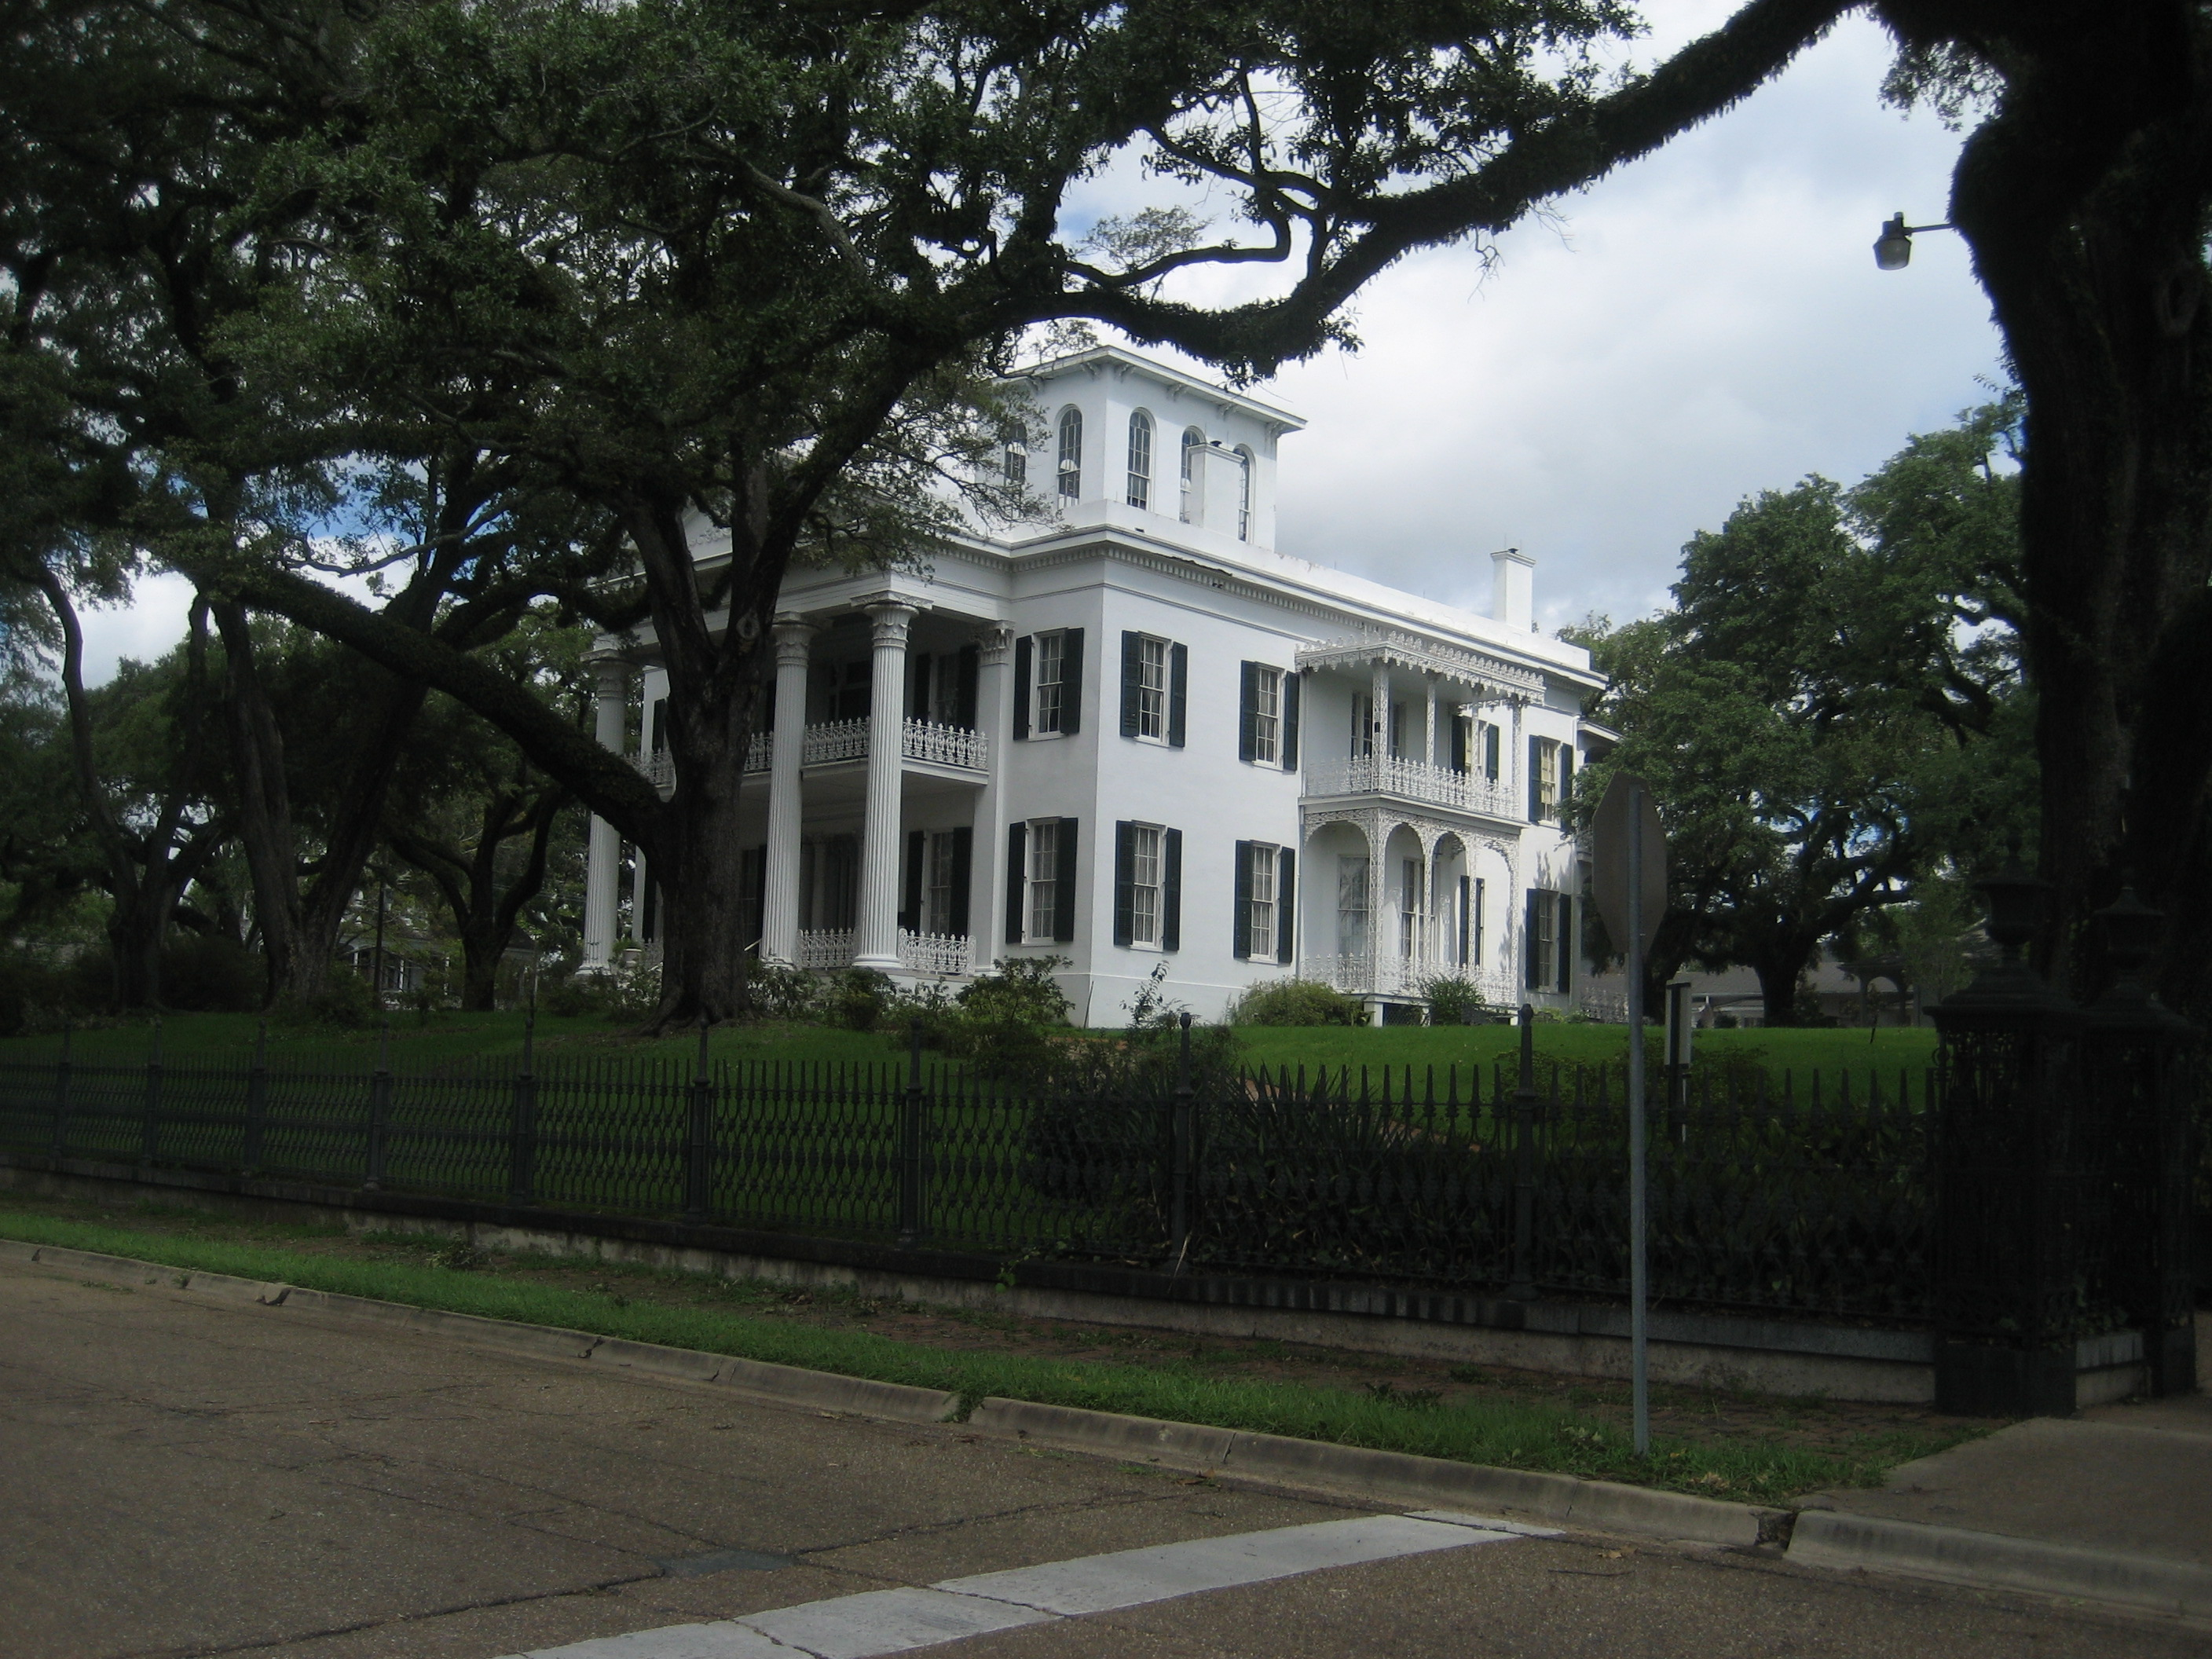 """Natchez4Sept2008HouseH"" by Infrogmation of New Orleans - Photo by Infrogmation. Licensed under CC BY-SA 3.0 via Wikimedia Commons - https://commons.wikimedia.org/wiki/File:Natchez4Sept2008HouseH.jpg#/media/File:Natchez4Sept2008HouseH.jpg"